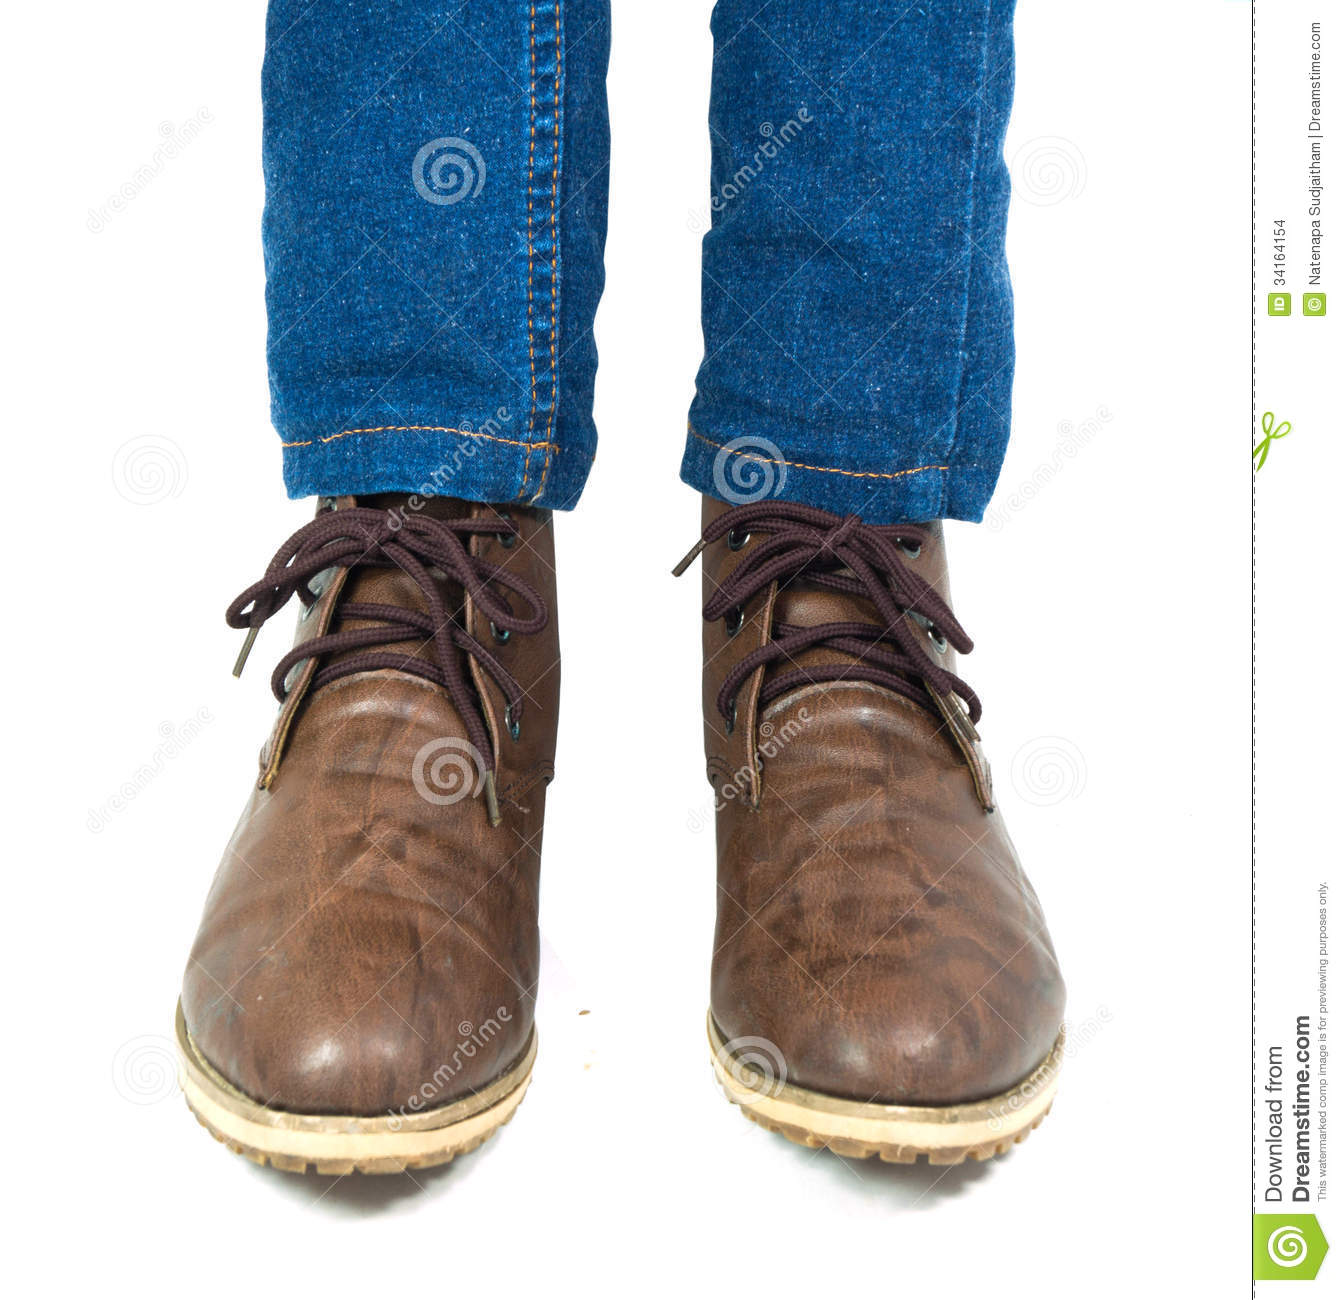 Brown Shoes And Blue Jeans Stock Images - Image 34164154